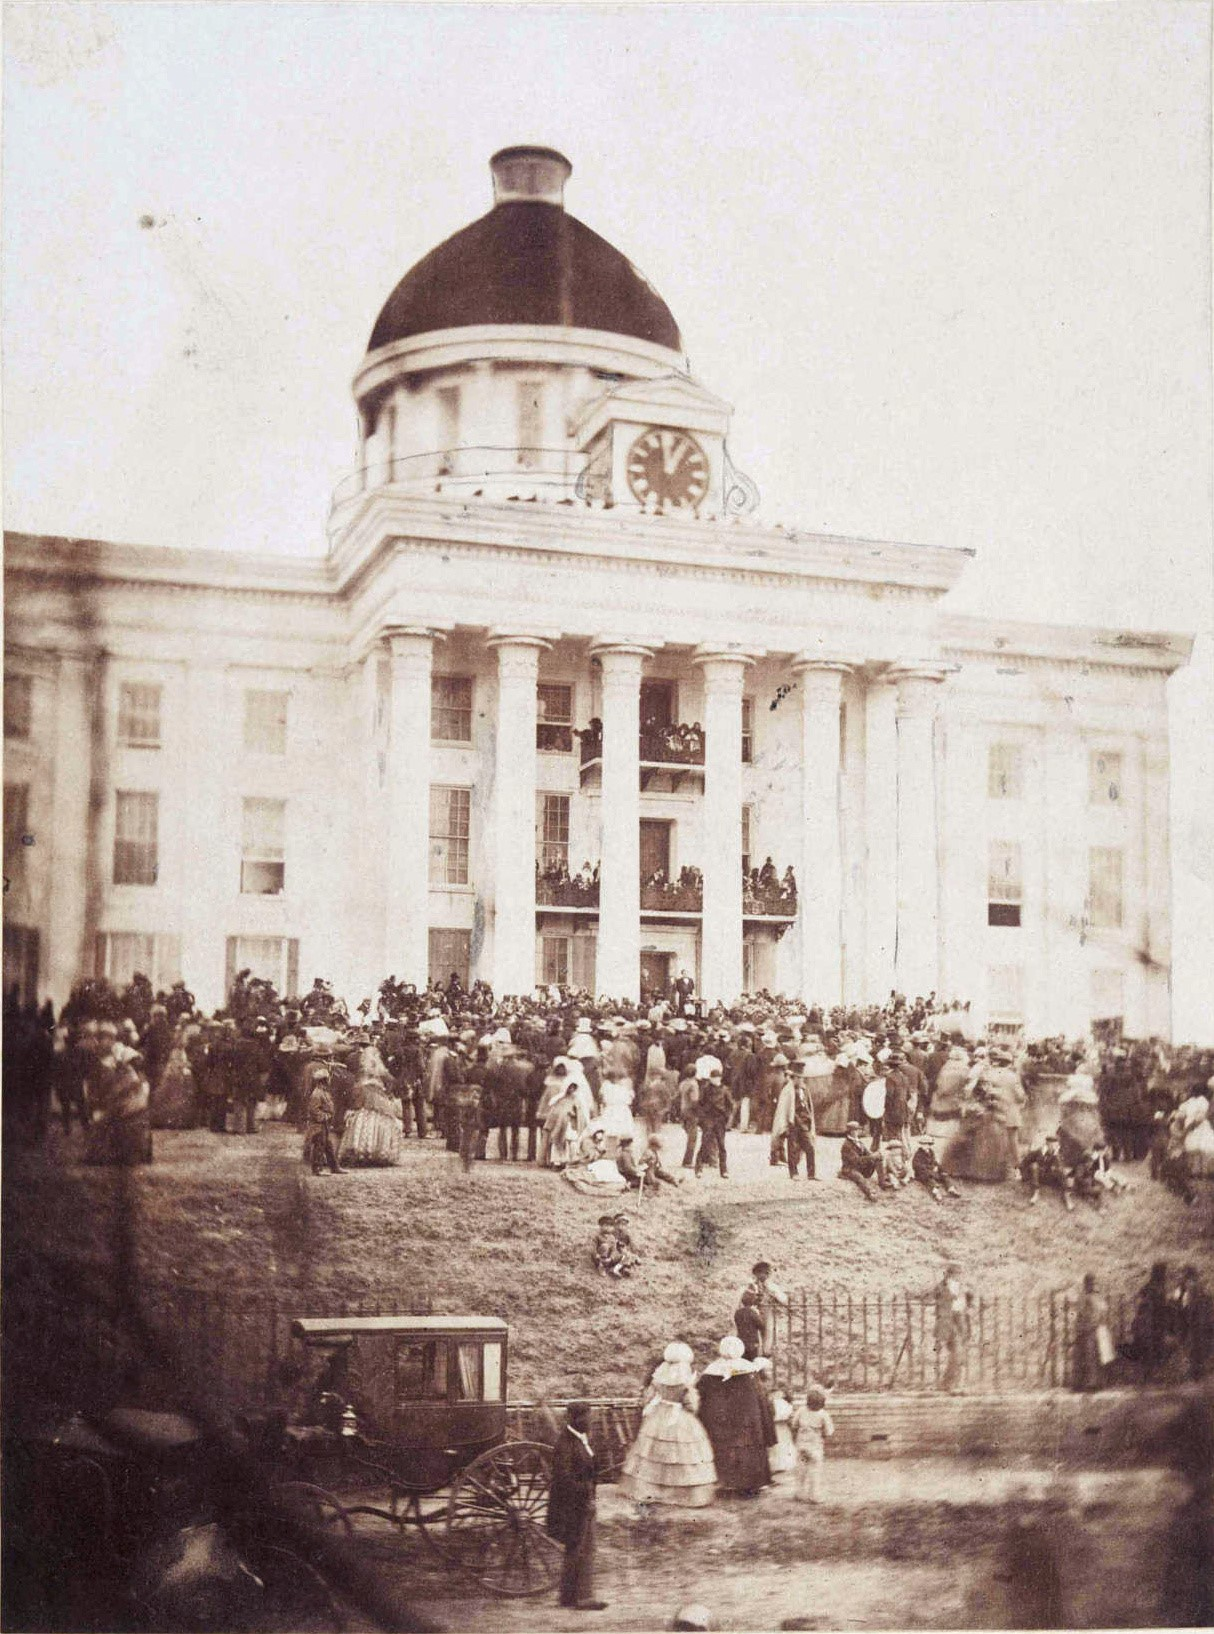 Inauguration of Jefferson Davis as the president of the Confederate States of America in Montgomery, Alabama, February 18, 1861.